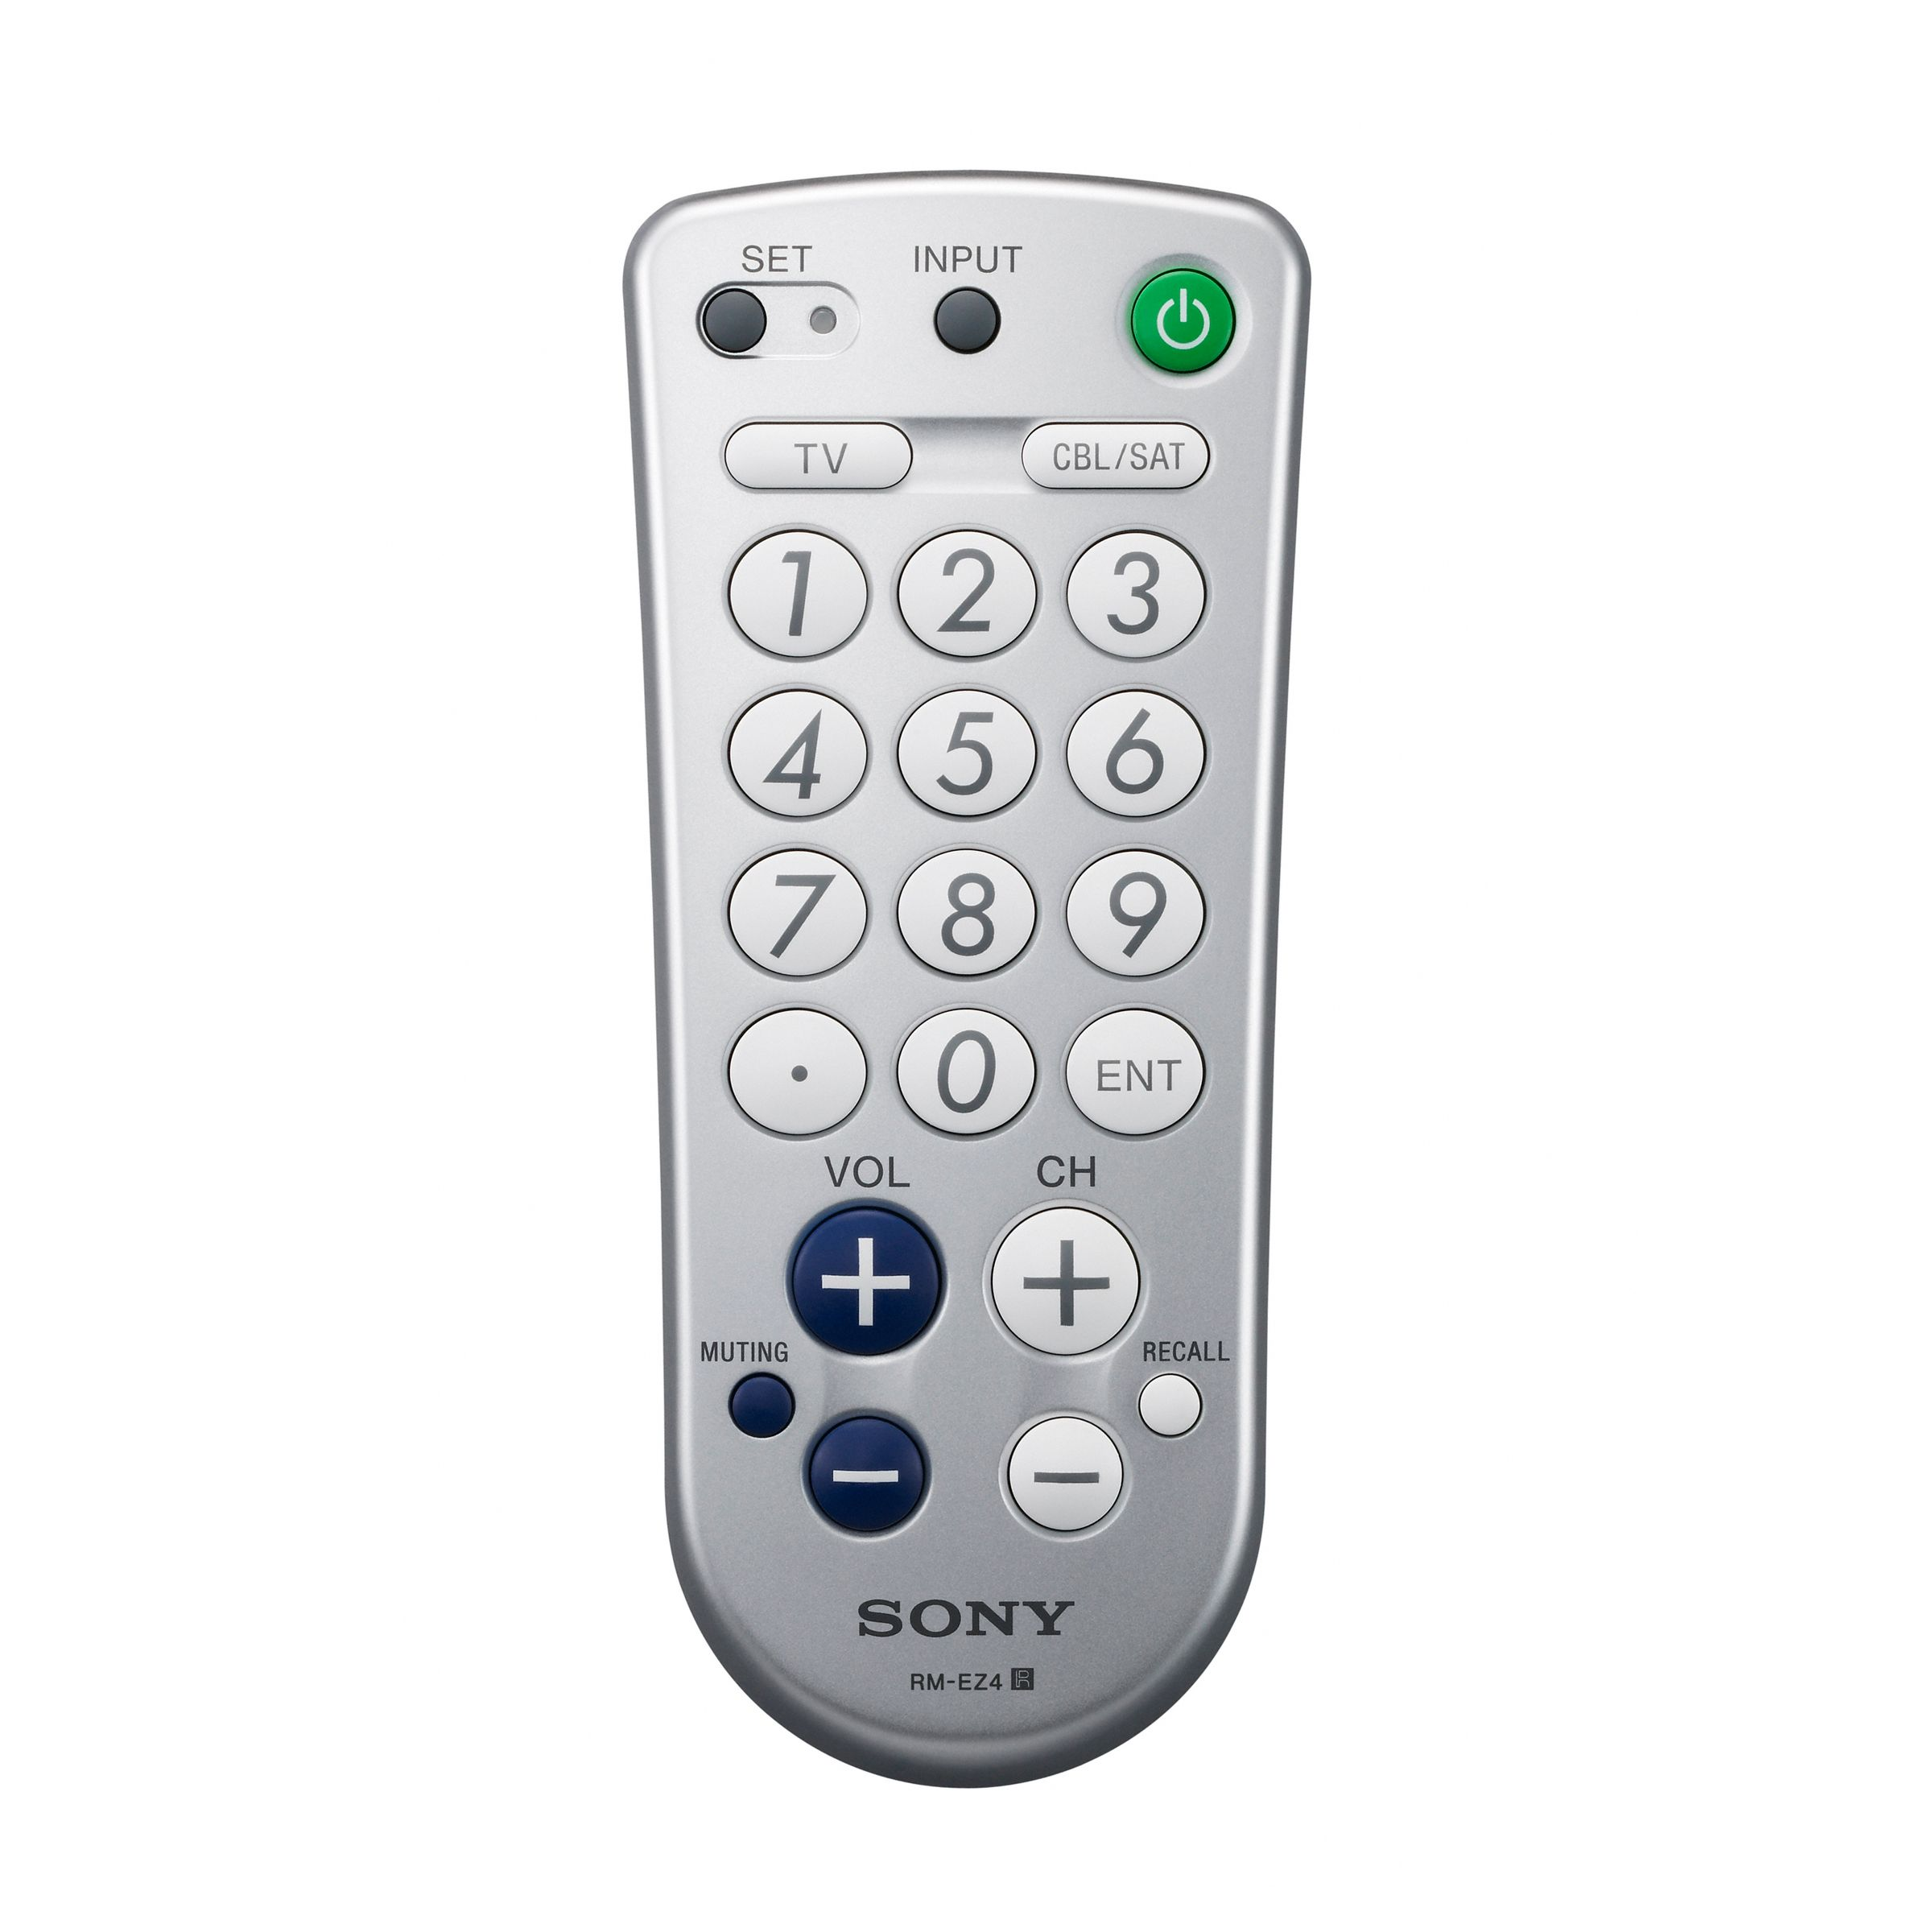 Sony Remote Control for TV & Cable Box